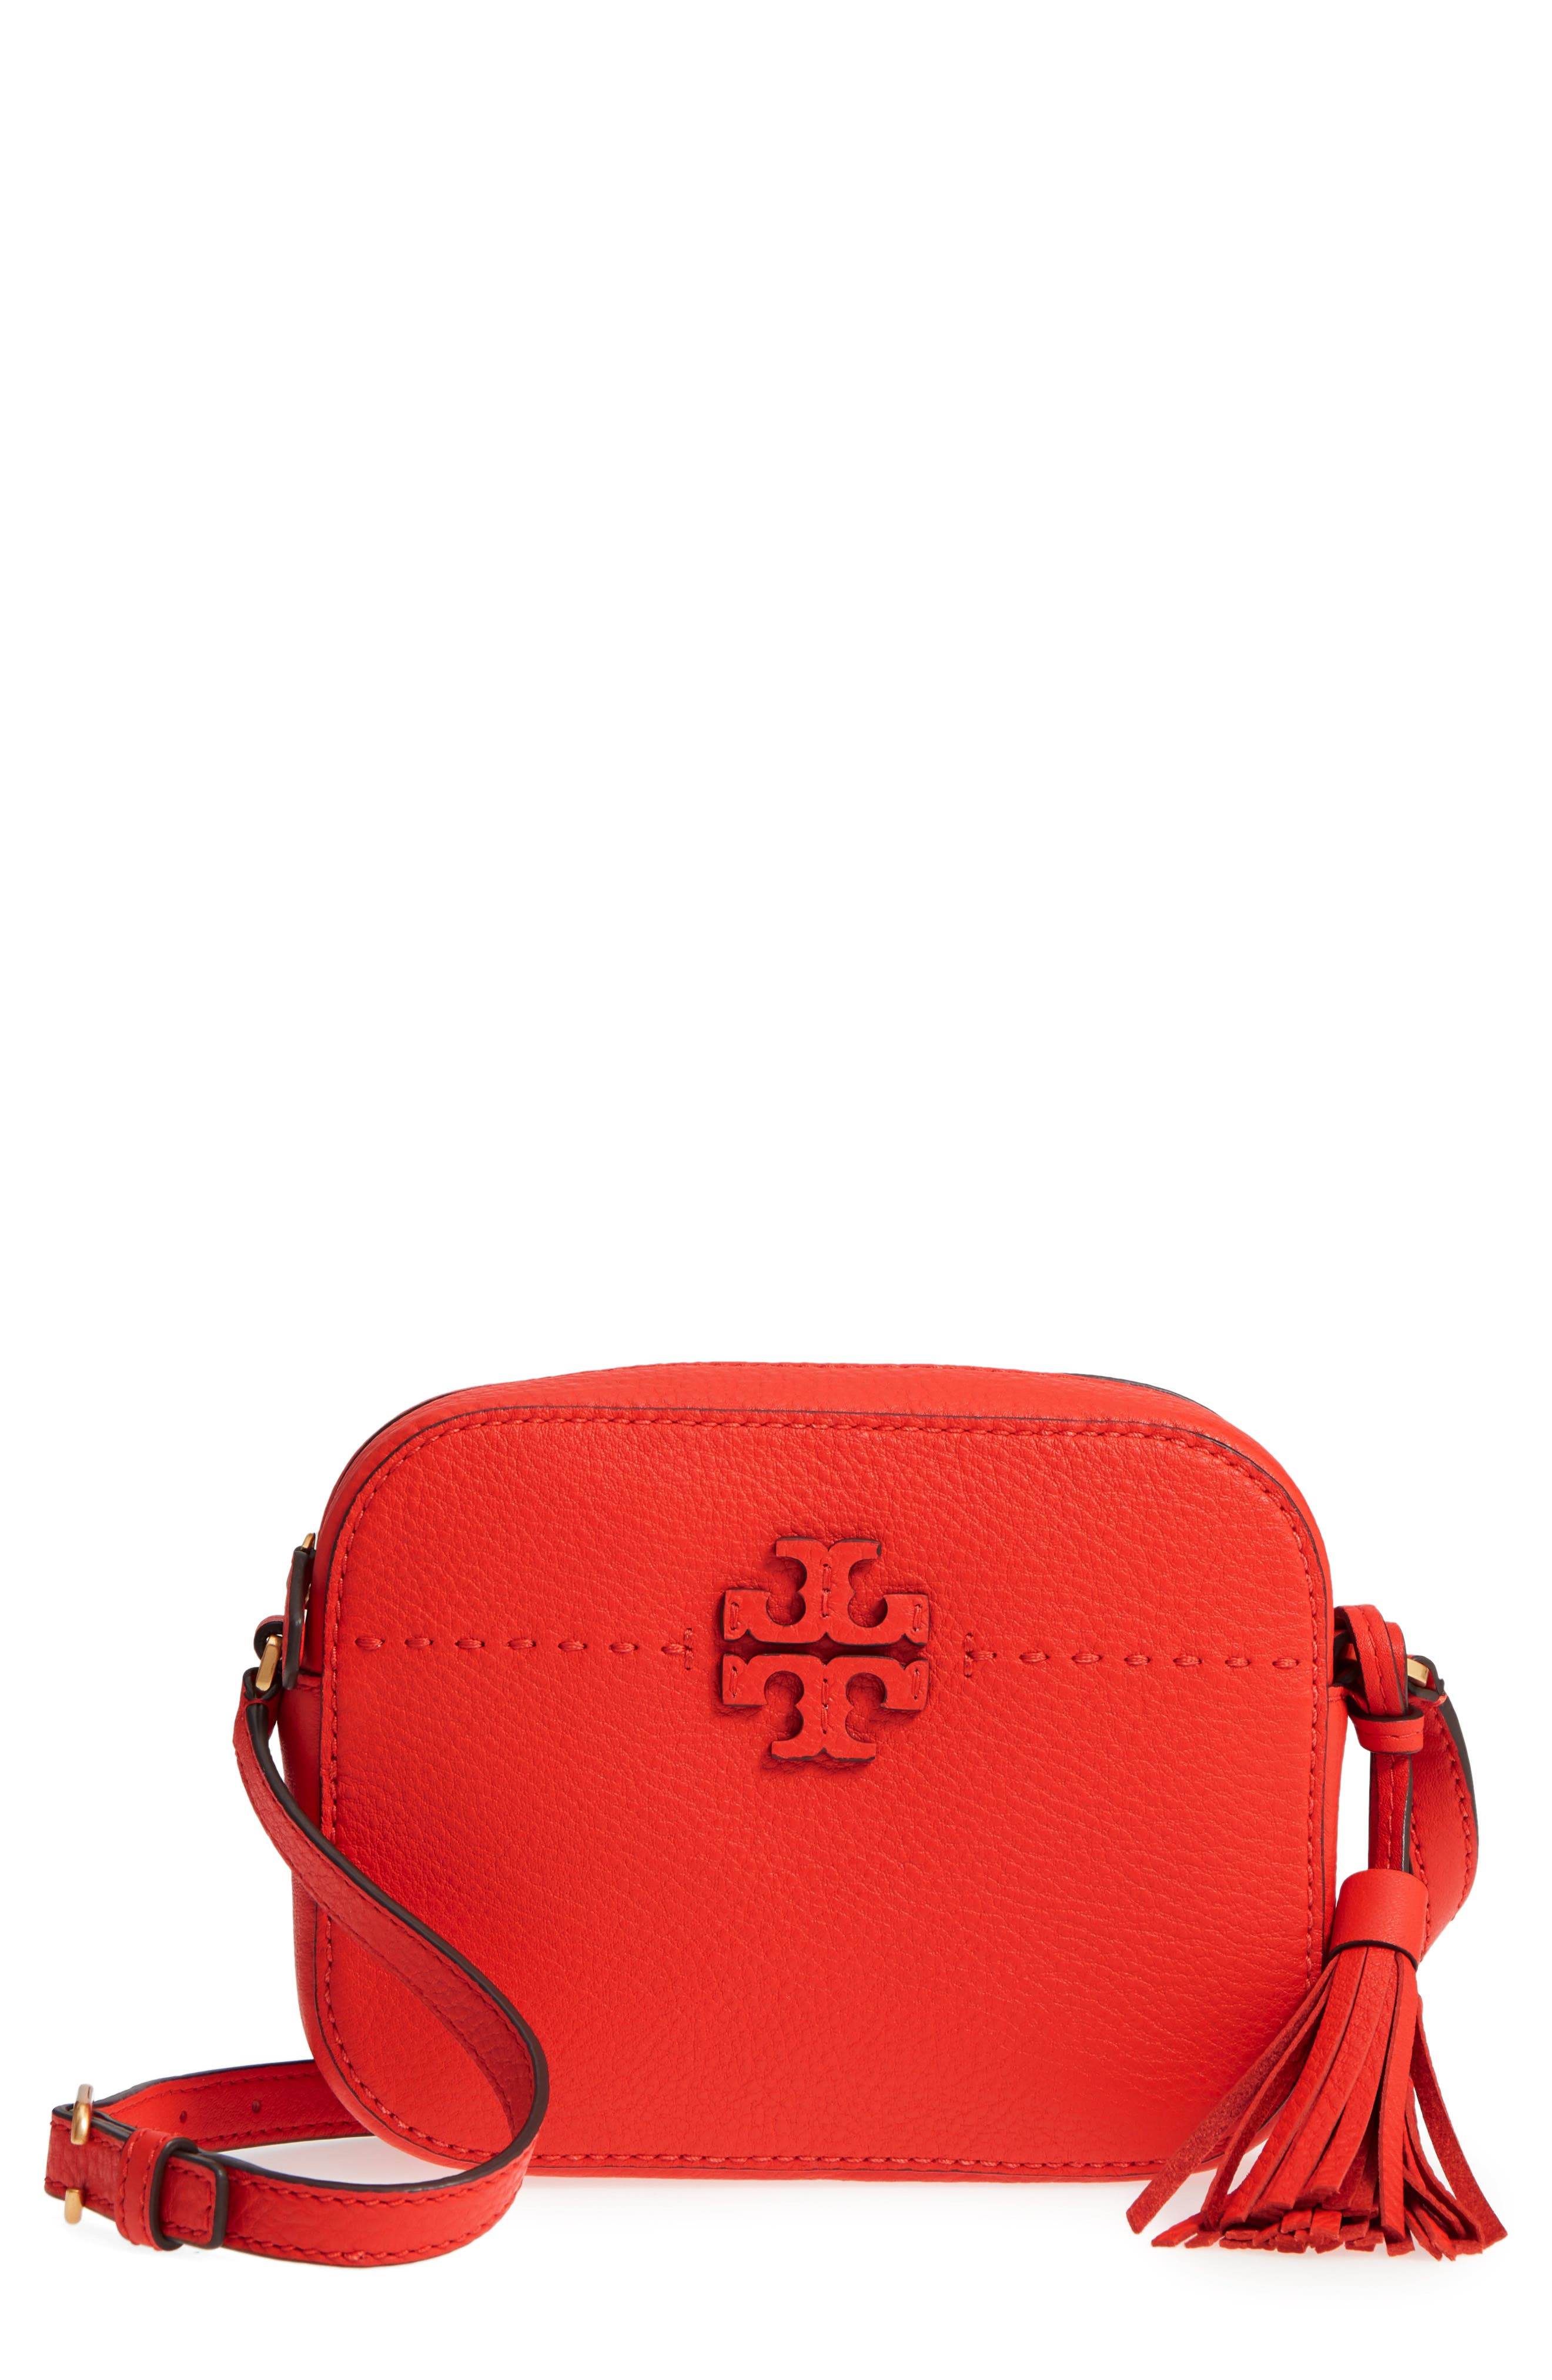 McGraw Leather Camera Bag,                             Main thumbnail 1, color,                             Poppy Red